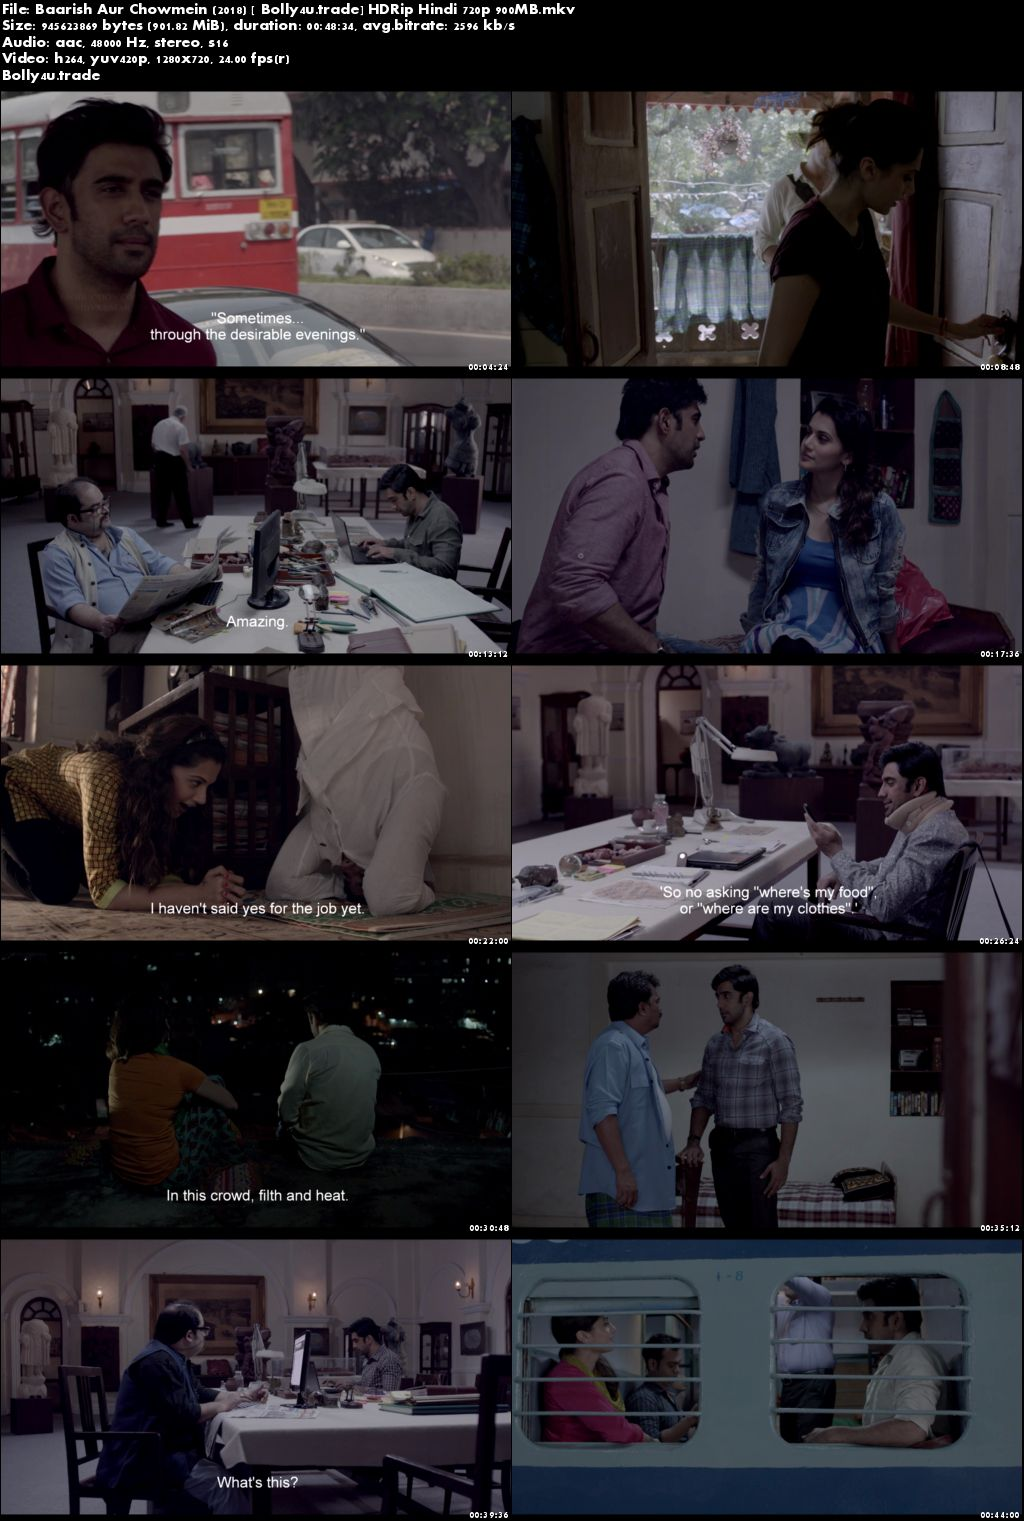 Baarish Aur Chowmein 2018 HDRip 900MB Full Hindi Movie Download 720p